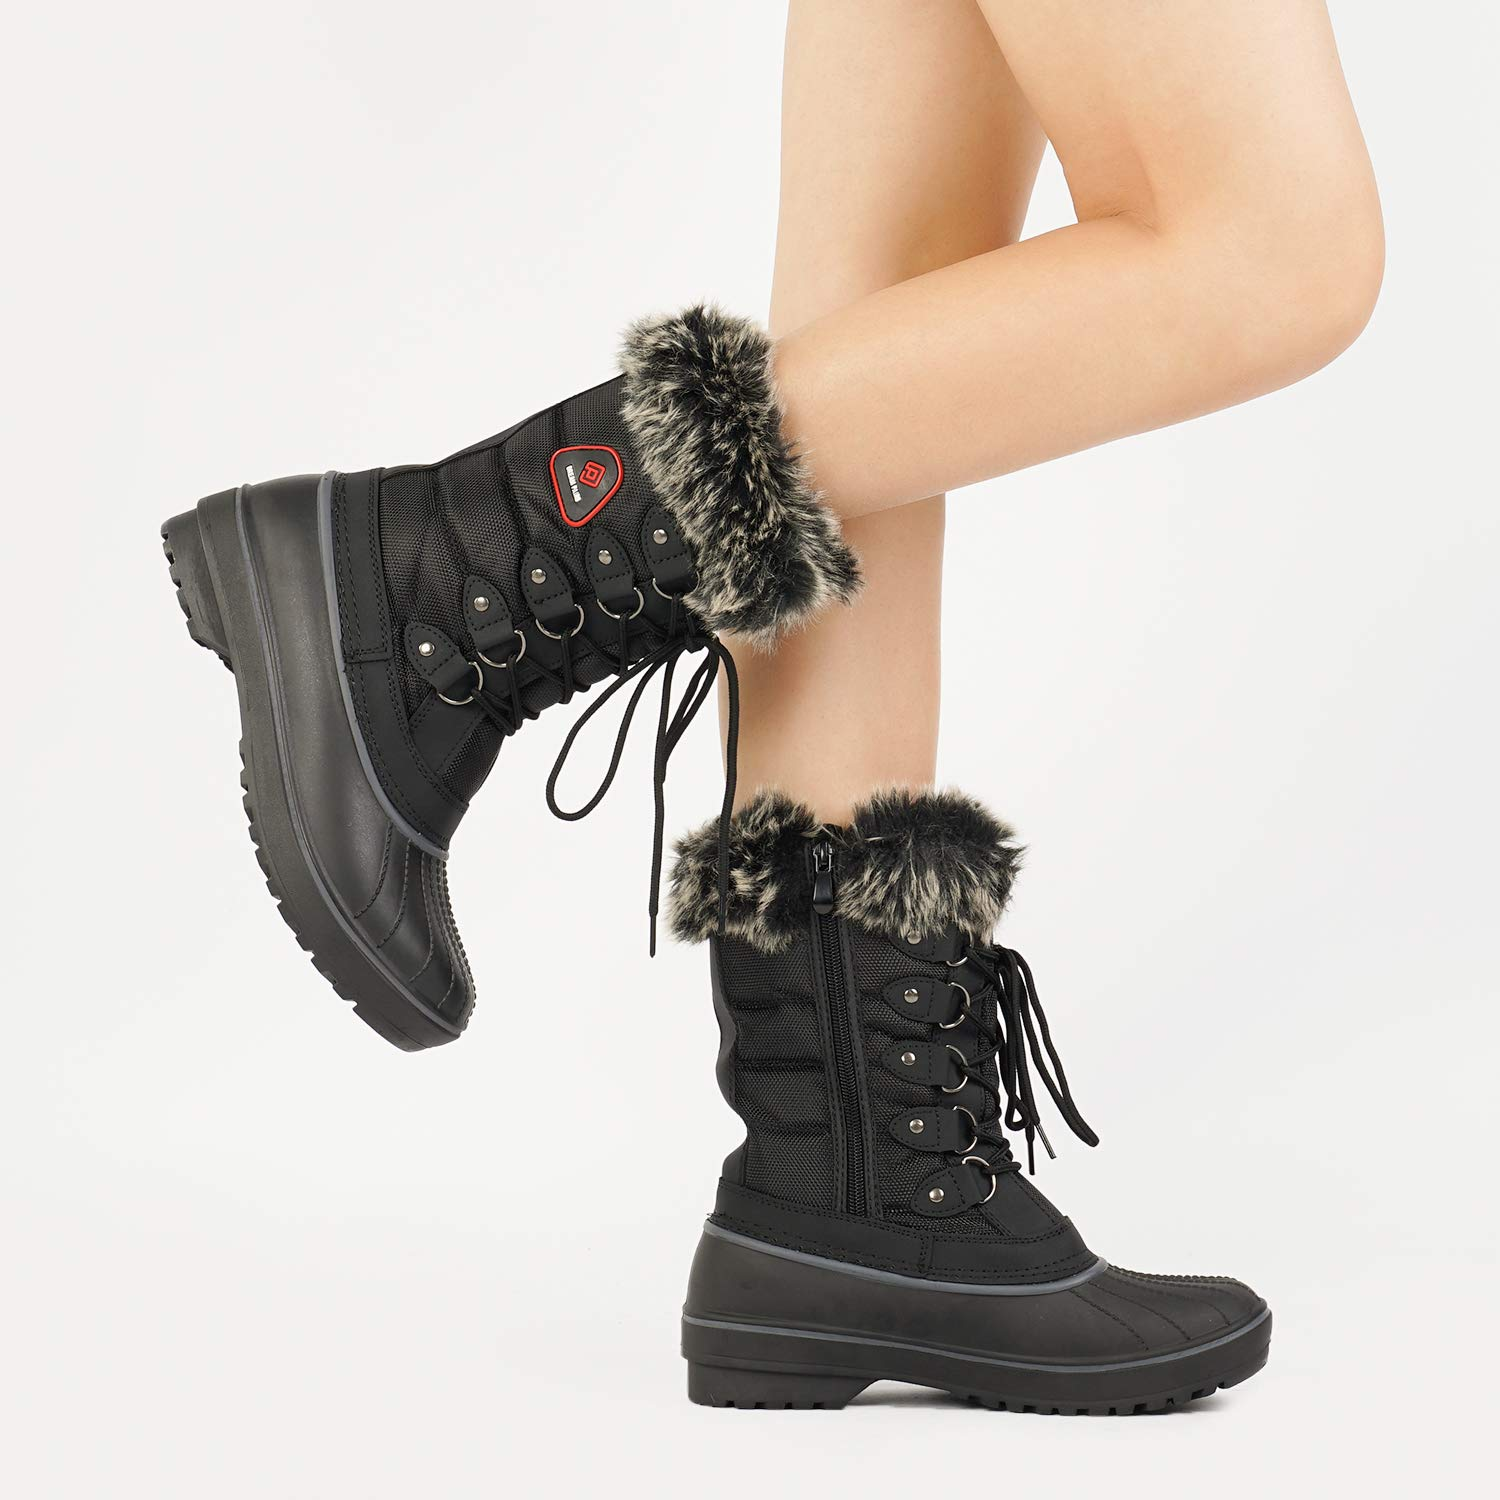 Review of DREAM PAIRS Women's Warm Faux Fur Lined Mid Calf Winter Snow Boots